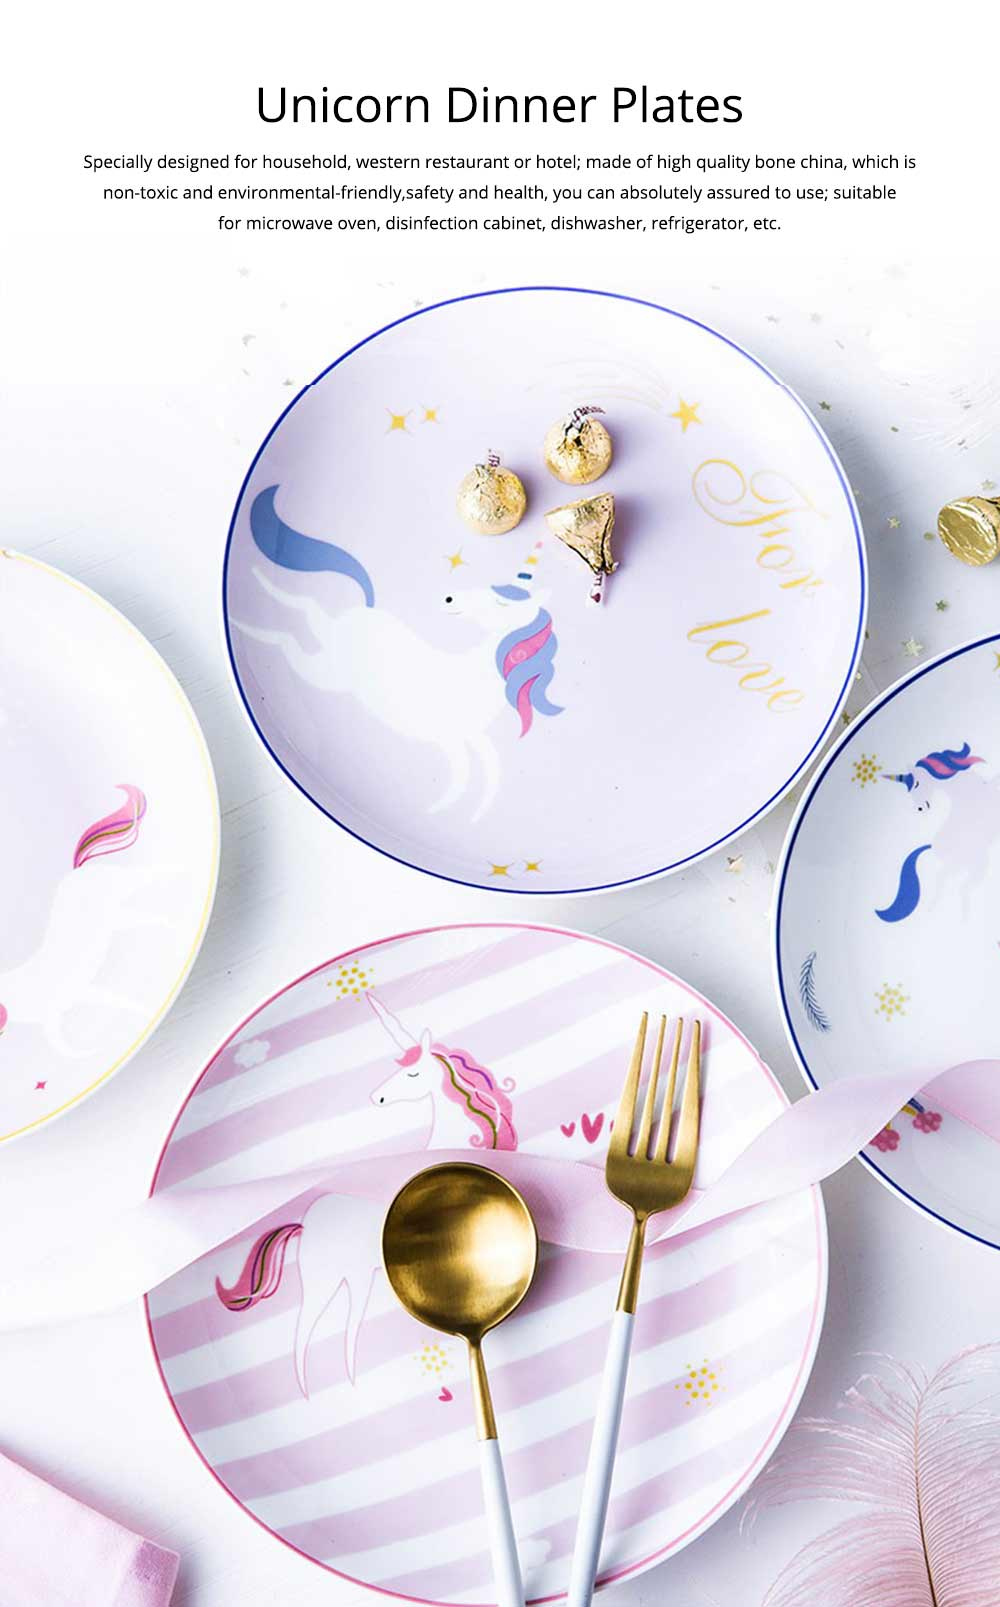 Unicorn Dinner Plates, Bone China Rainbow Steak Plate  0